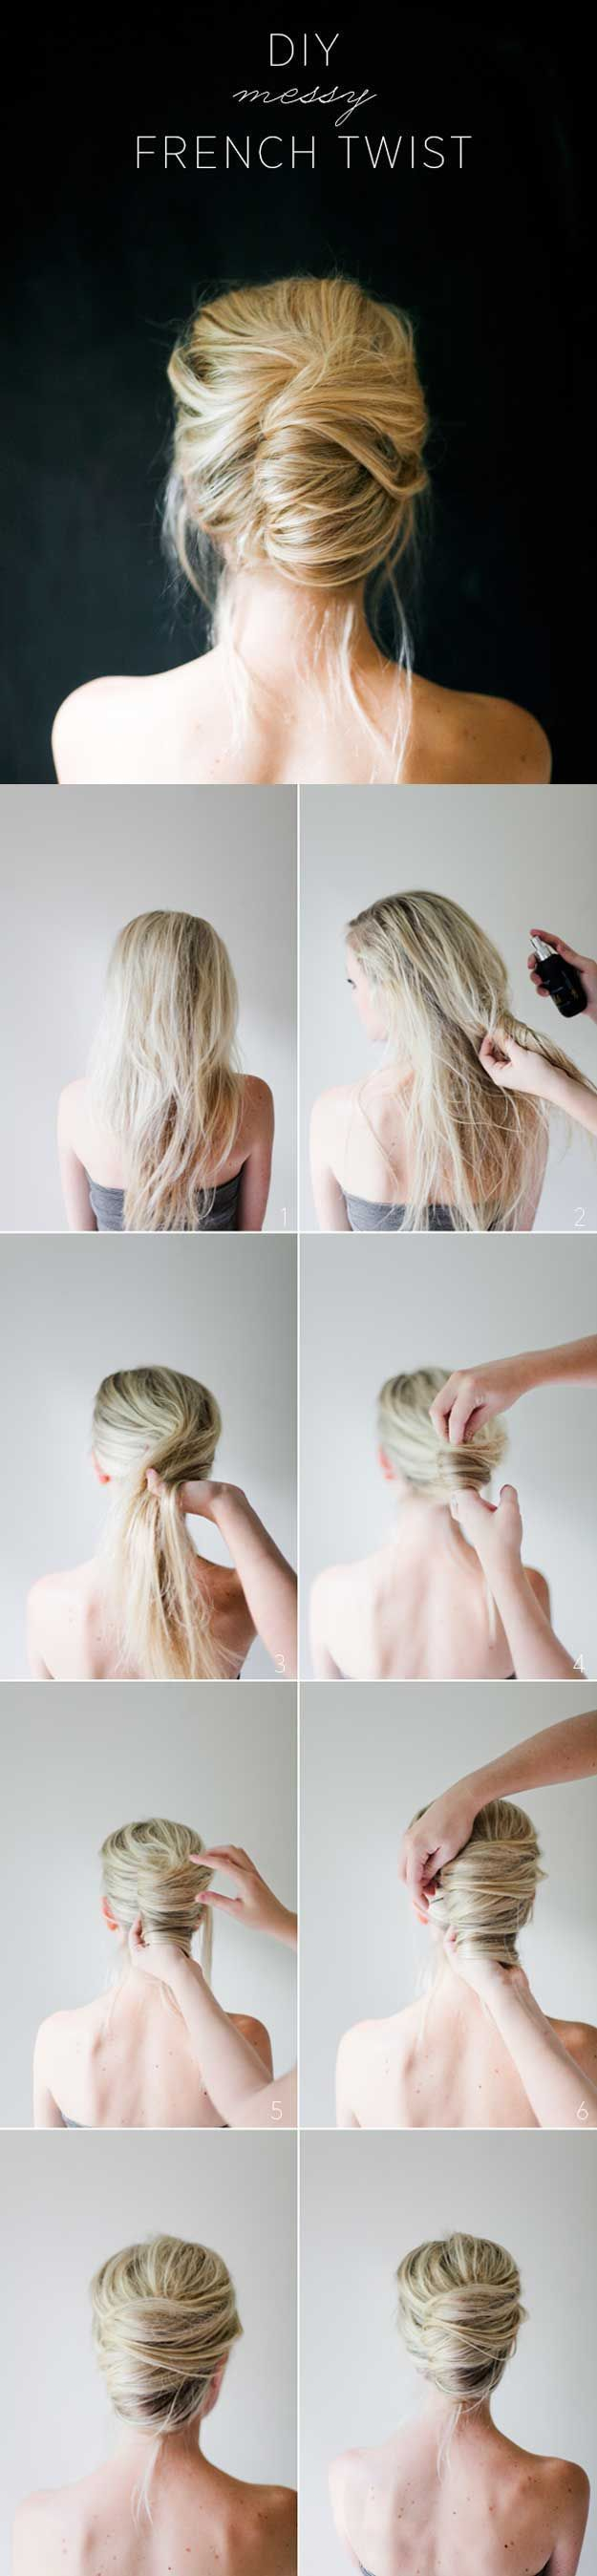 Best minute hairstyles messy french twist tutorial quick and